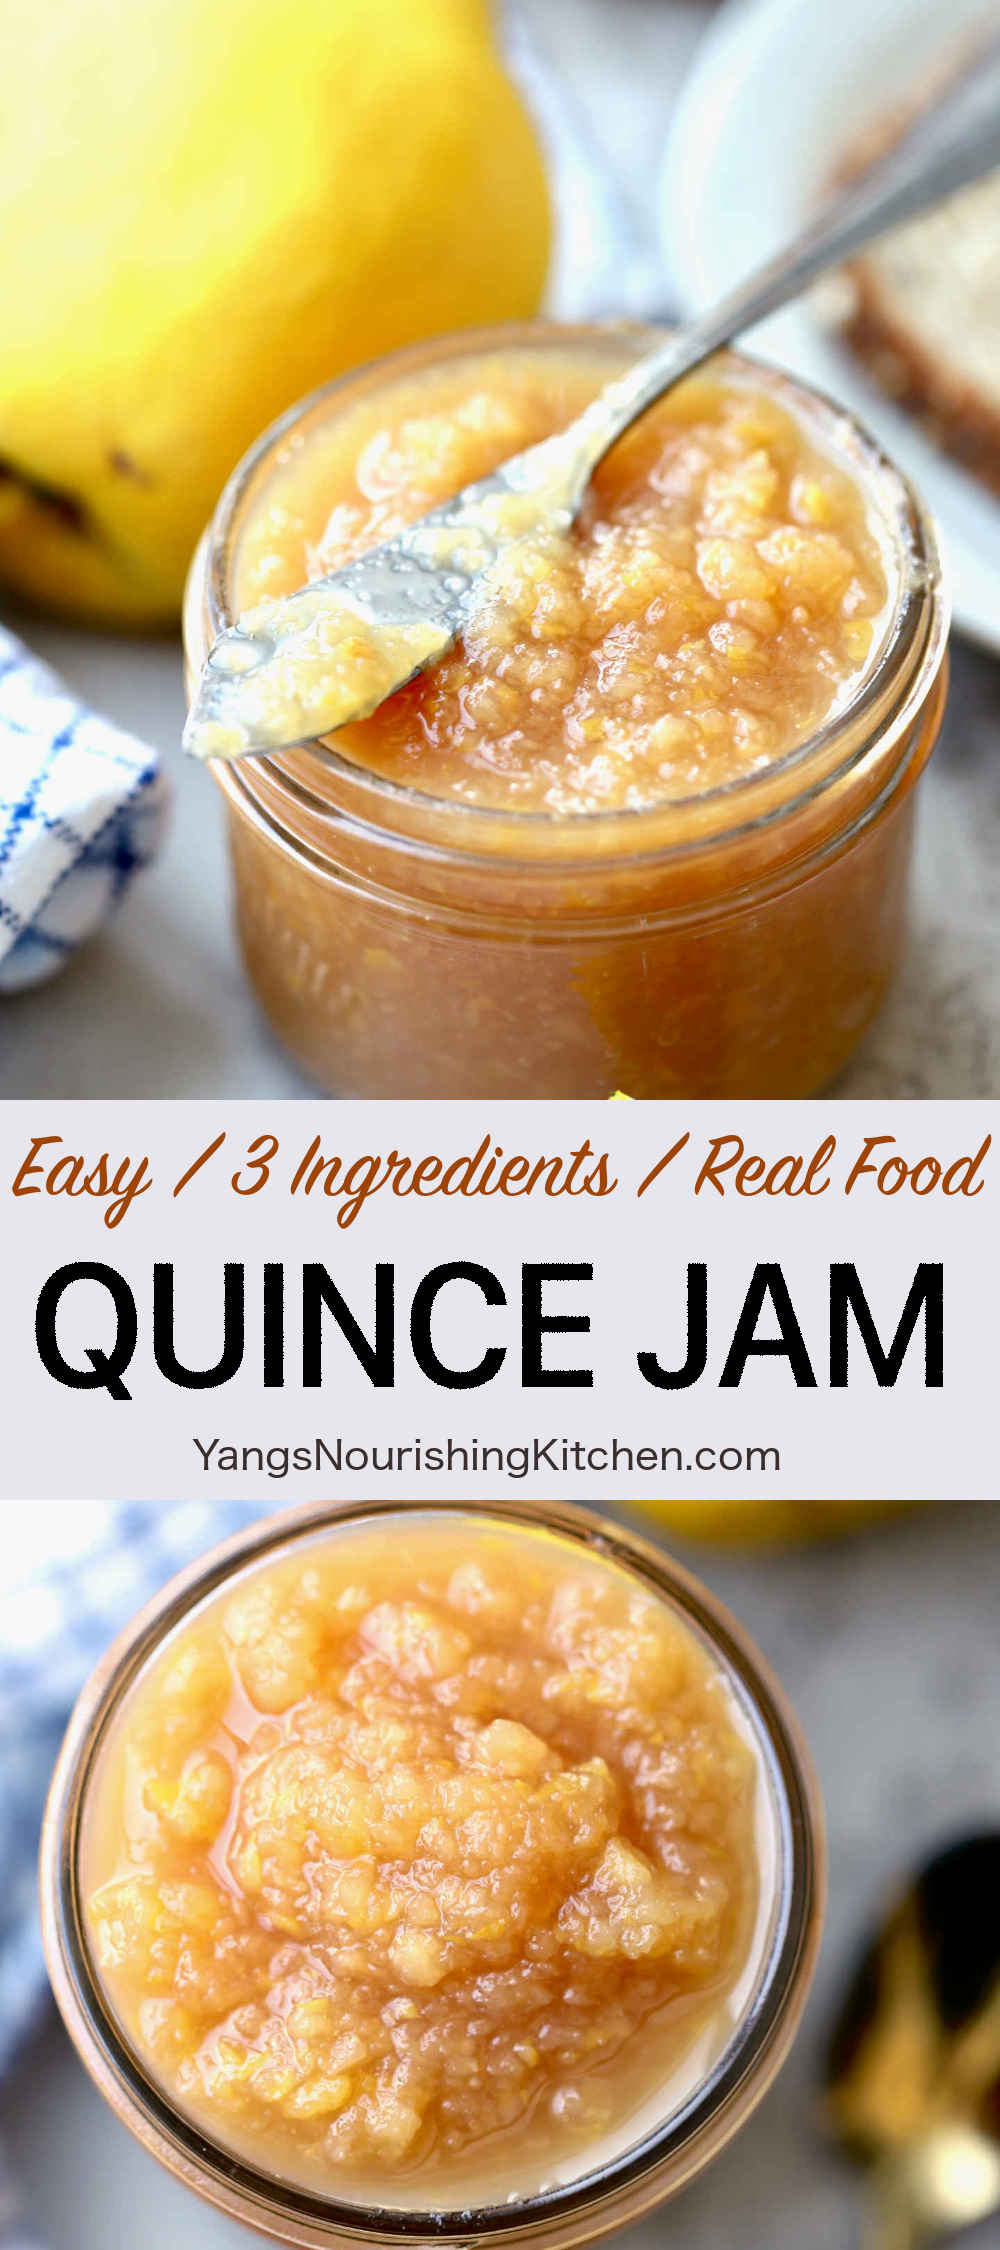 Quince Jam (Easy, 3 Ingredients)